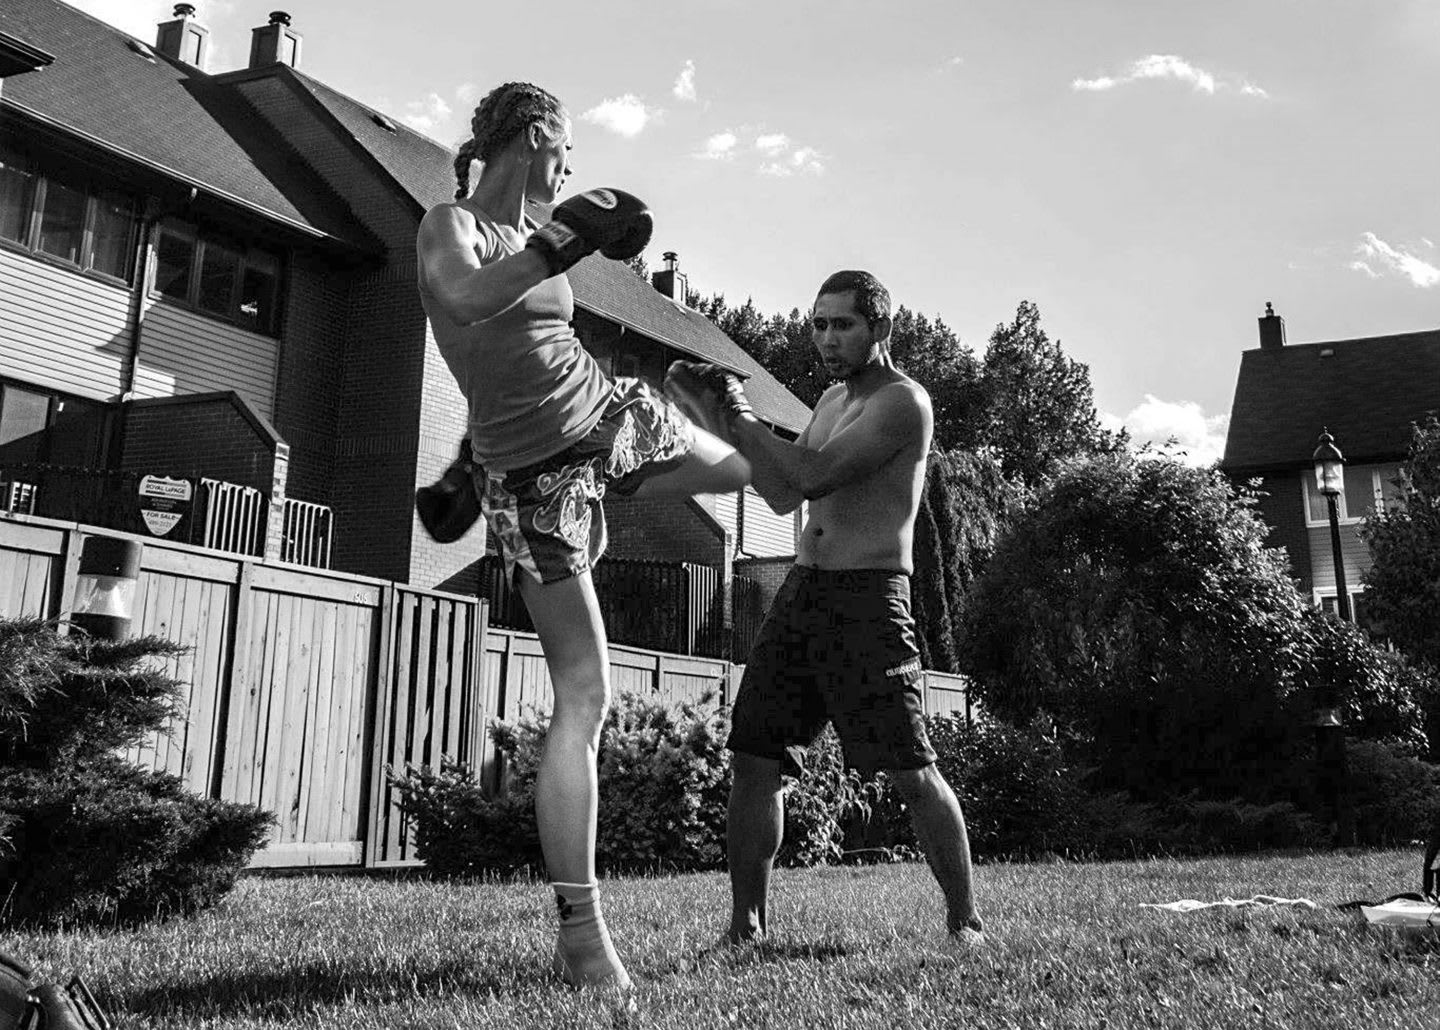 a women and a man kickboxing in a backyard